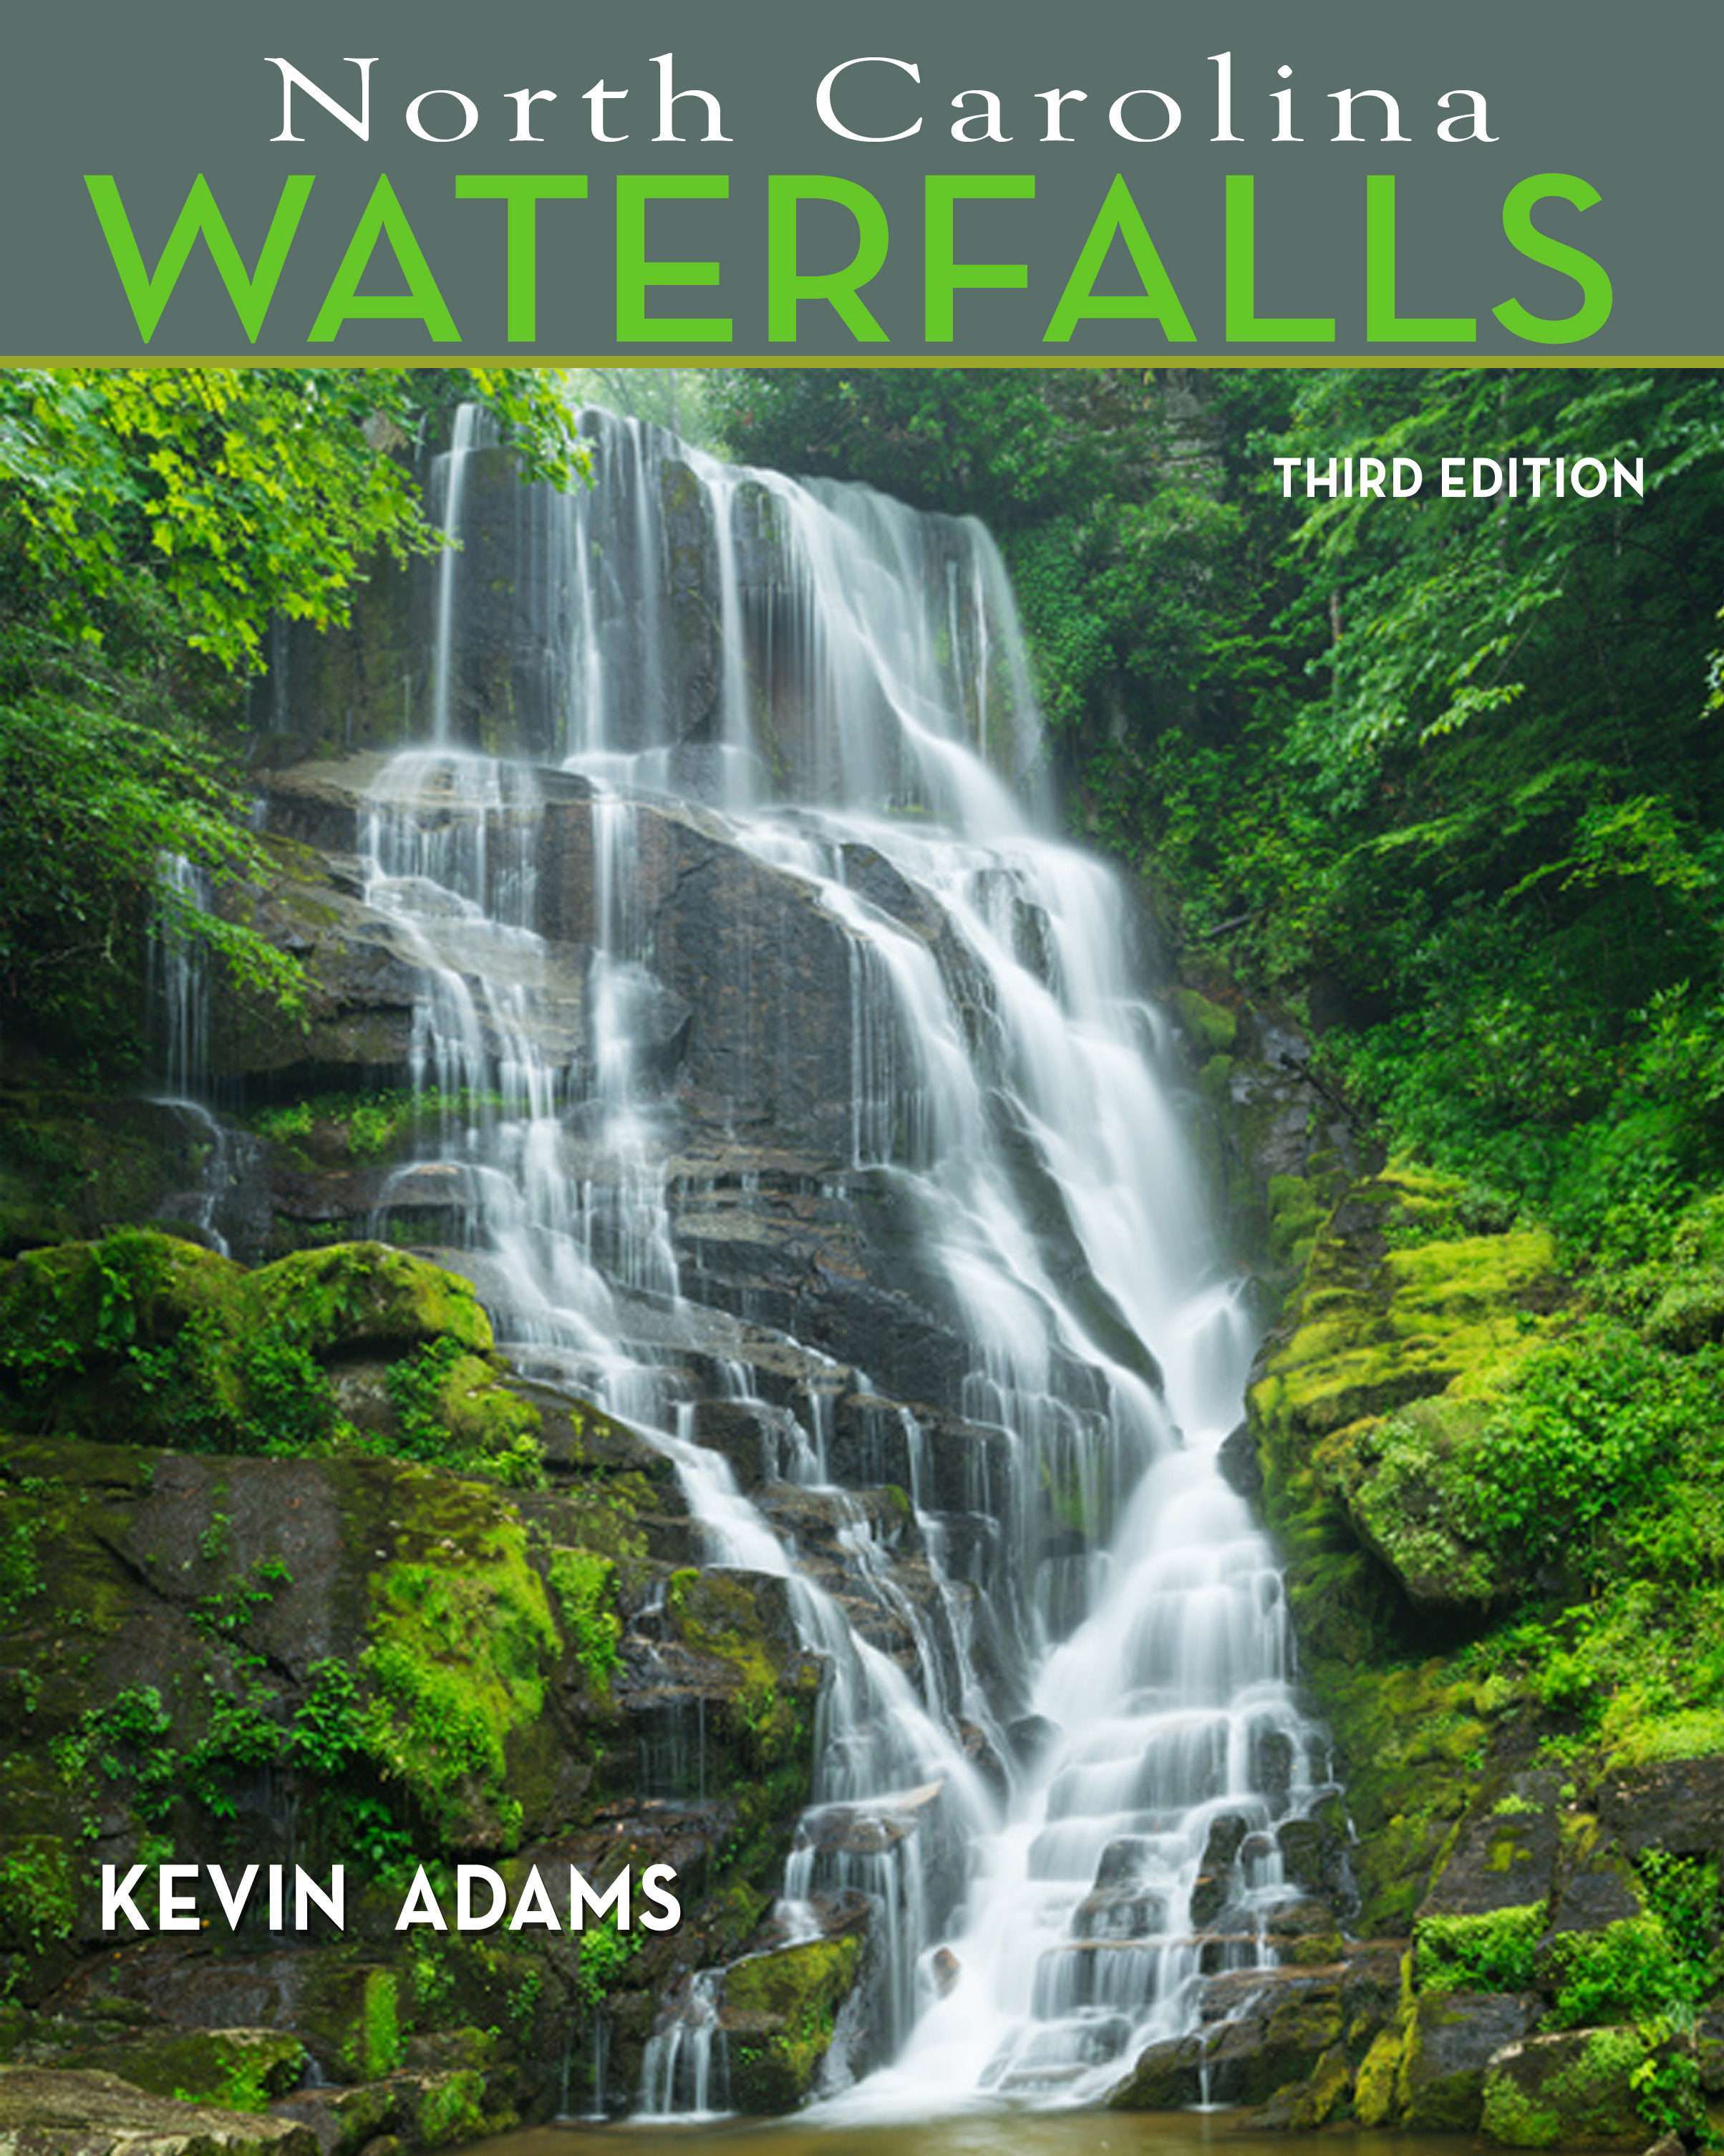 Kevin Adams' North Carolina Waterfalls book cover.